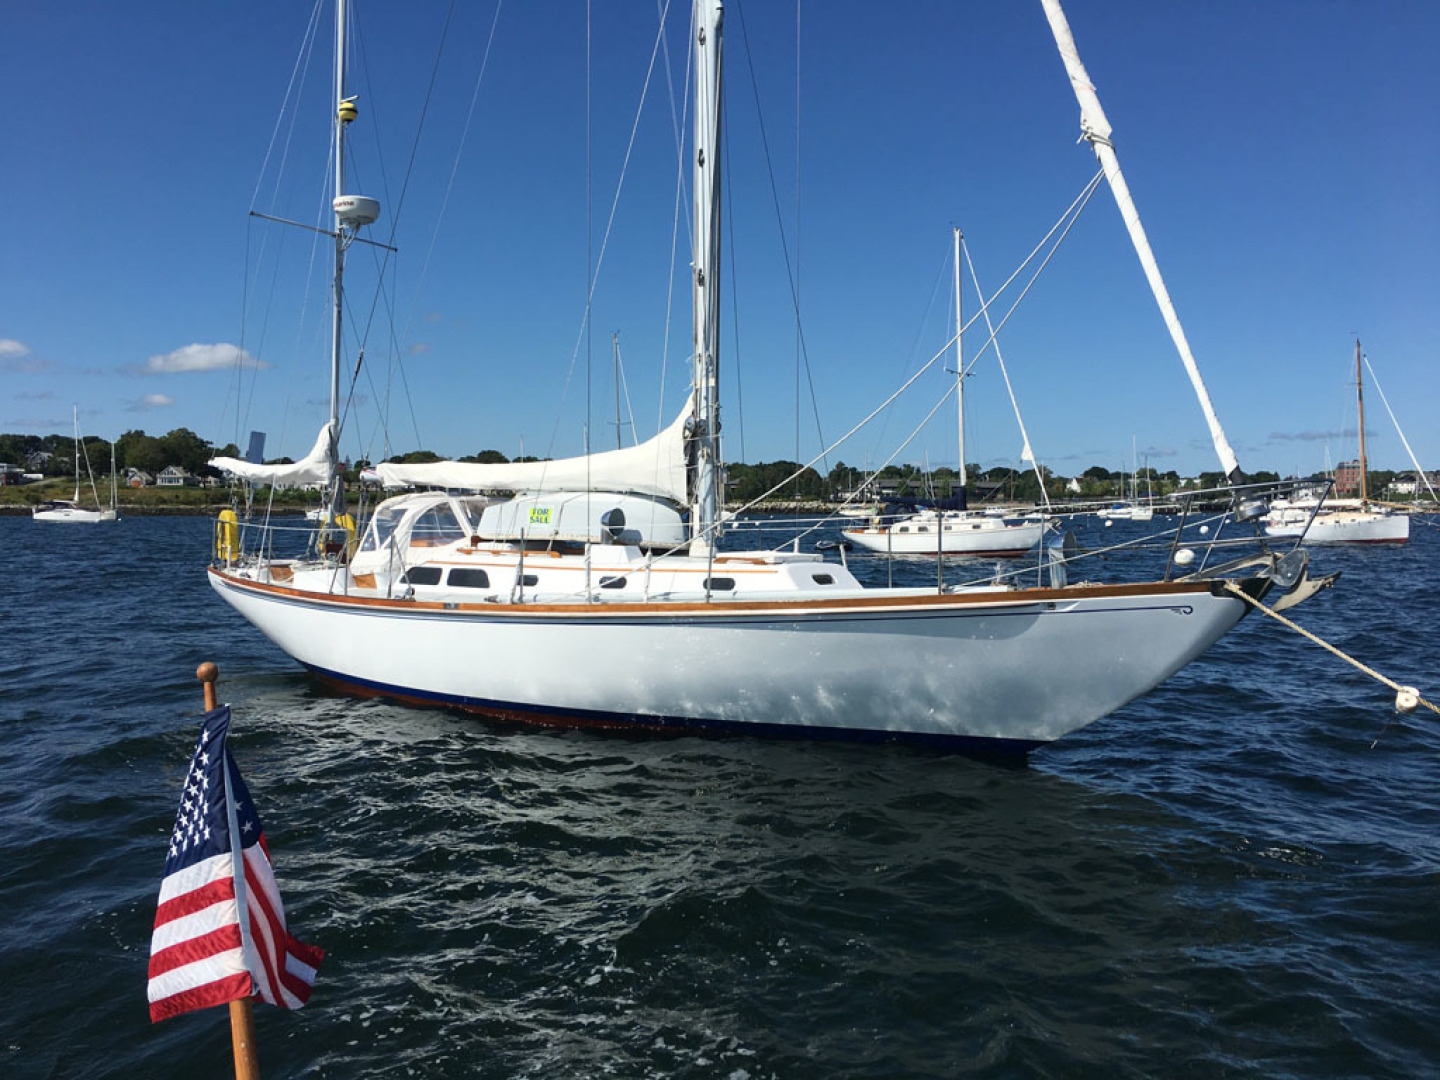 Hinckley-Bermuda 40 Yawl 1970-Rhodora South Berwick-Maine-United States-Main Profile-1588050 | Thumbnail